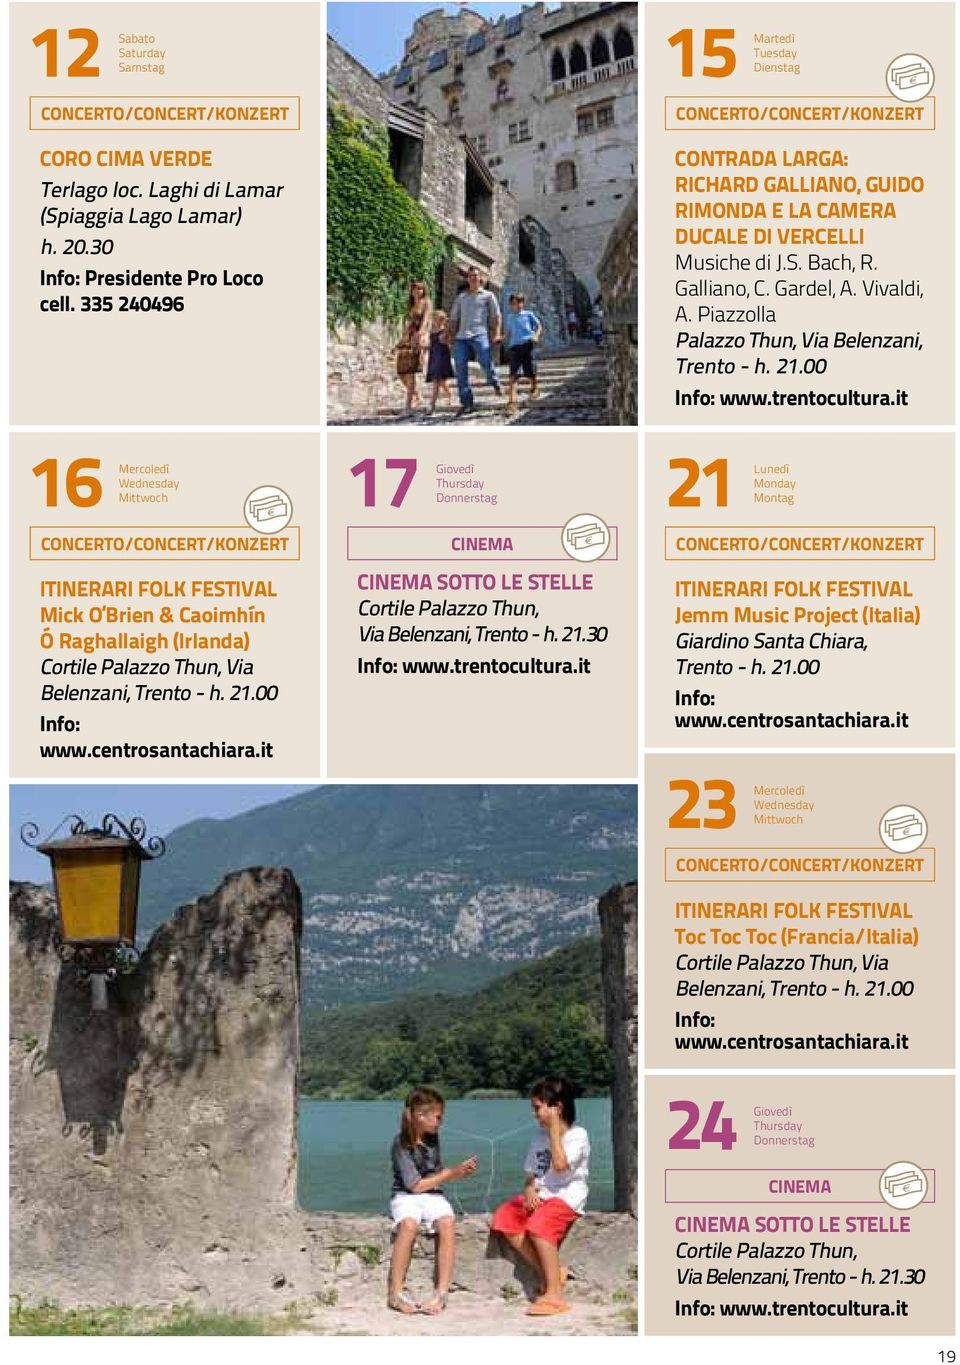 it 17 Giovedì Thursday Donnerstag CINEMA CINEMA SOTTO LE STELLE Cortile Palazzo Thun, Via Belenzani, Trento - h. 21.30 Info: www.trentocultura.